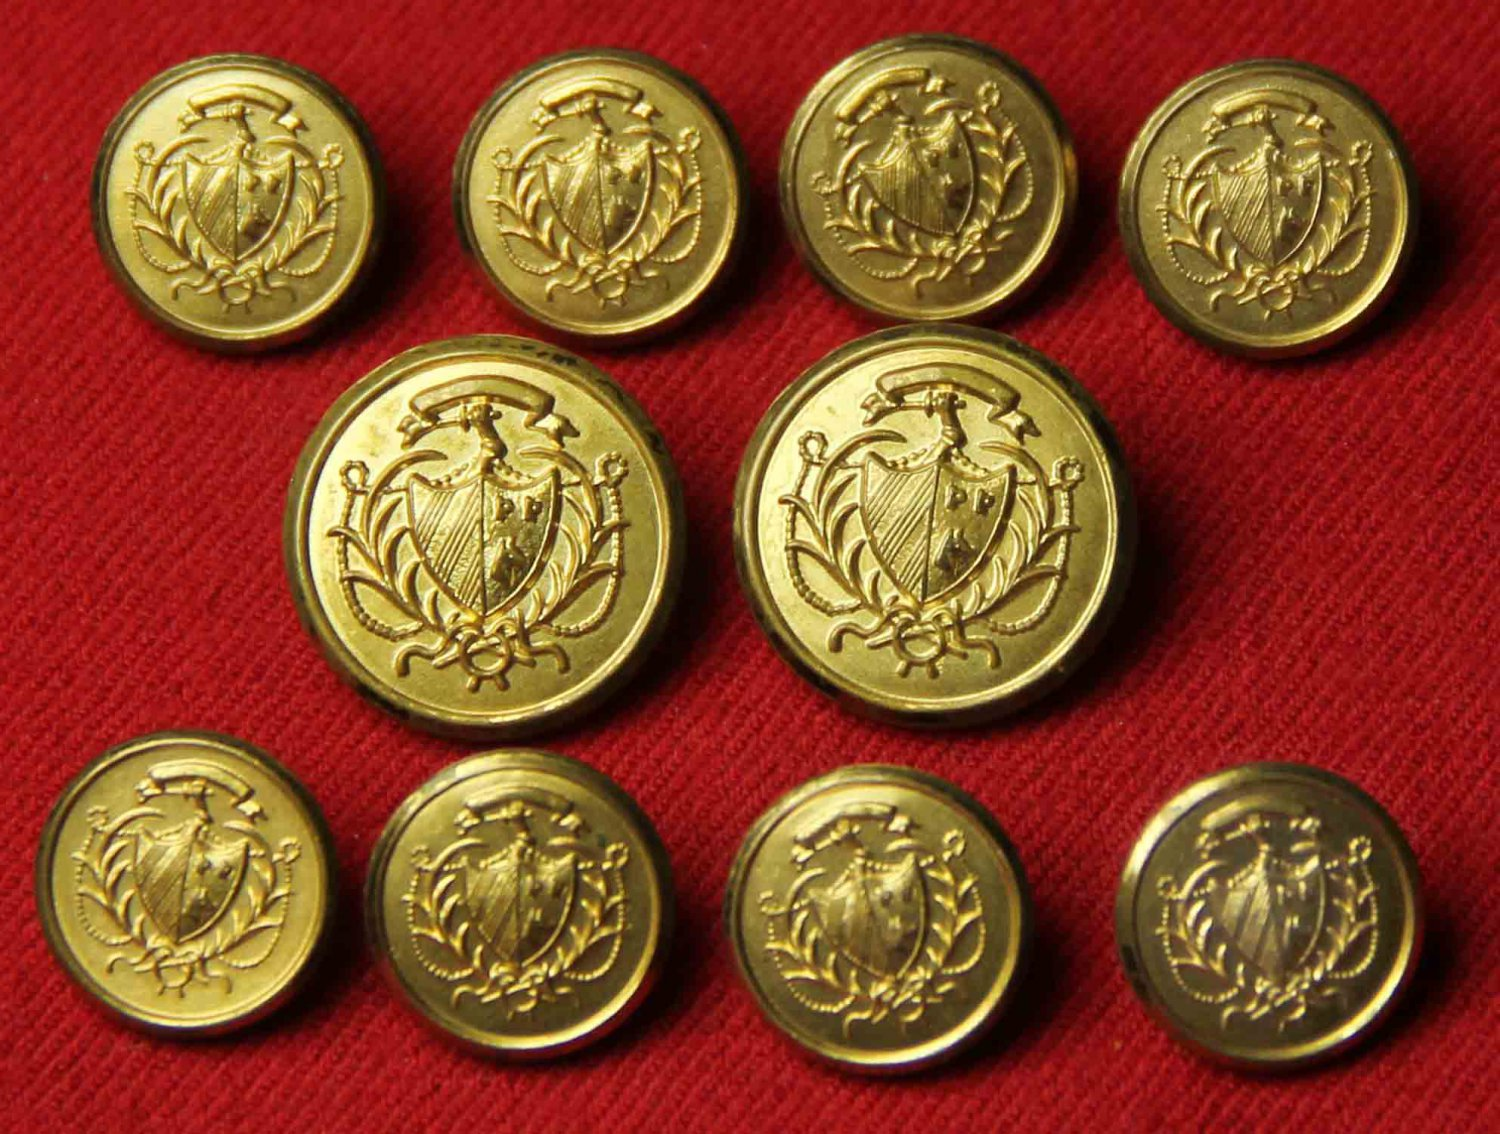 Vintage Waterbury Blazer Buttons Set Gold Brass 1970s Men's